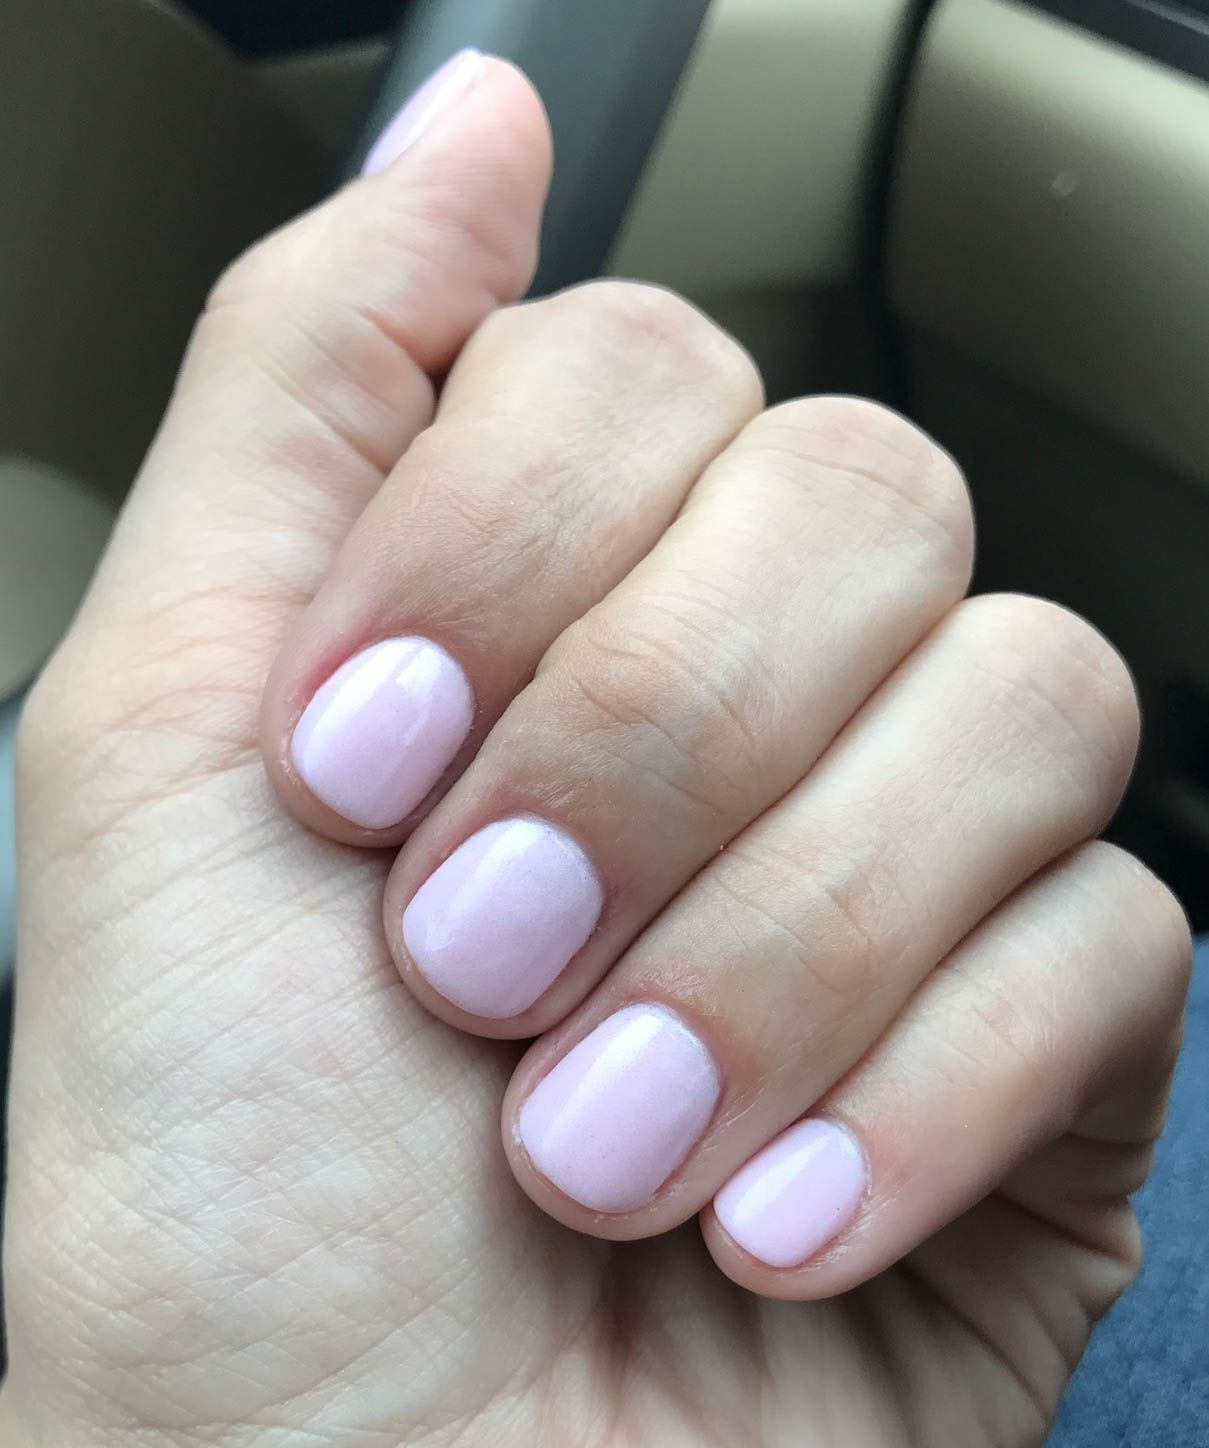 The Nail Files: My Thoughts on The New \